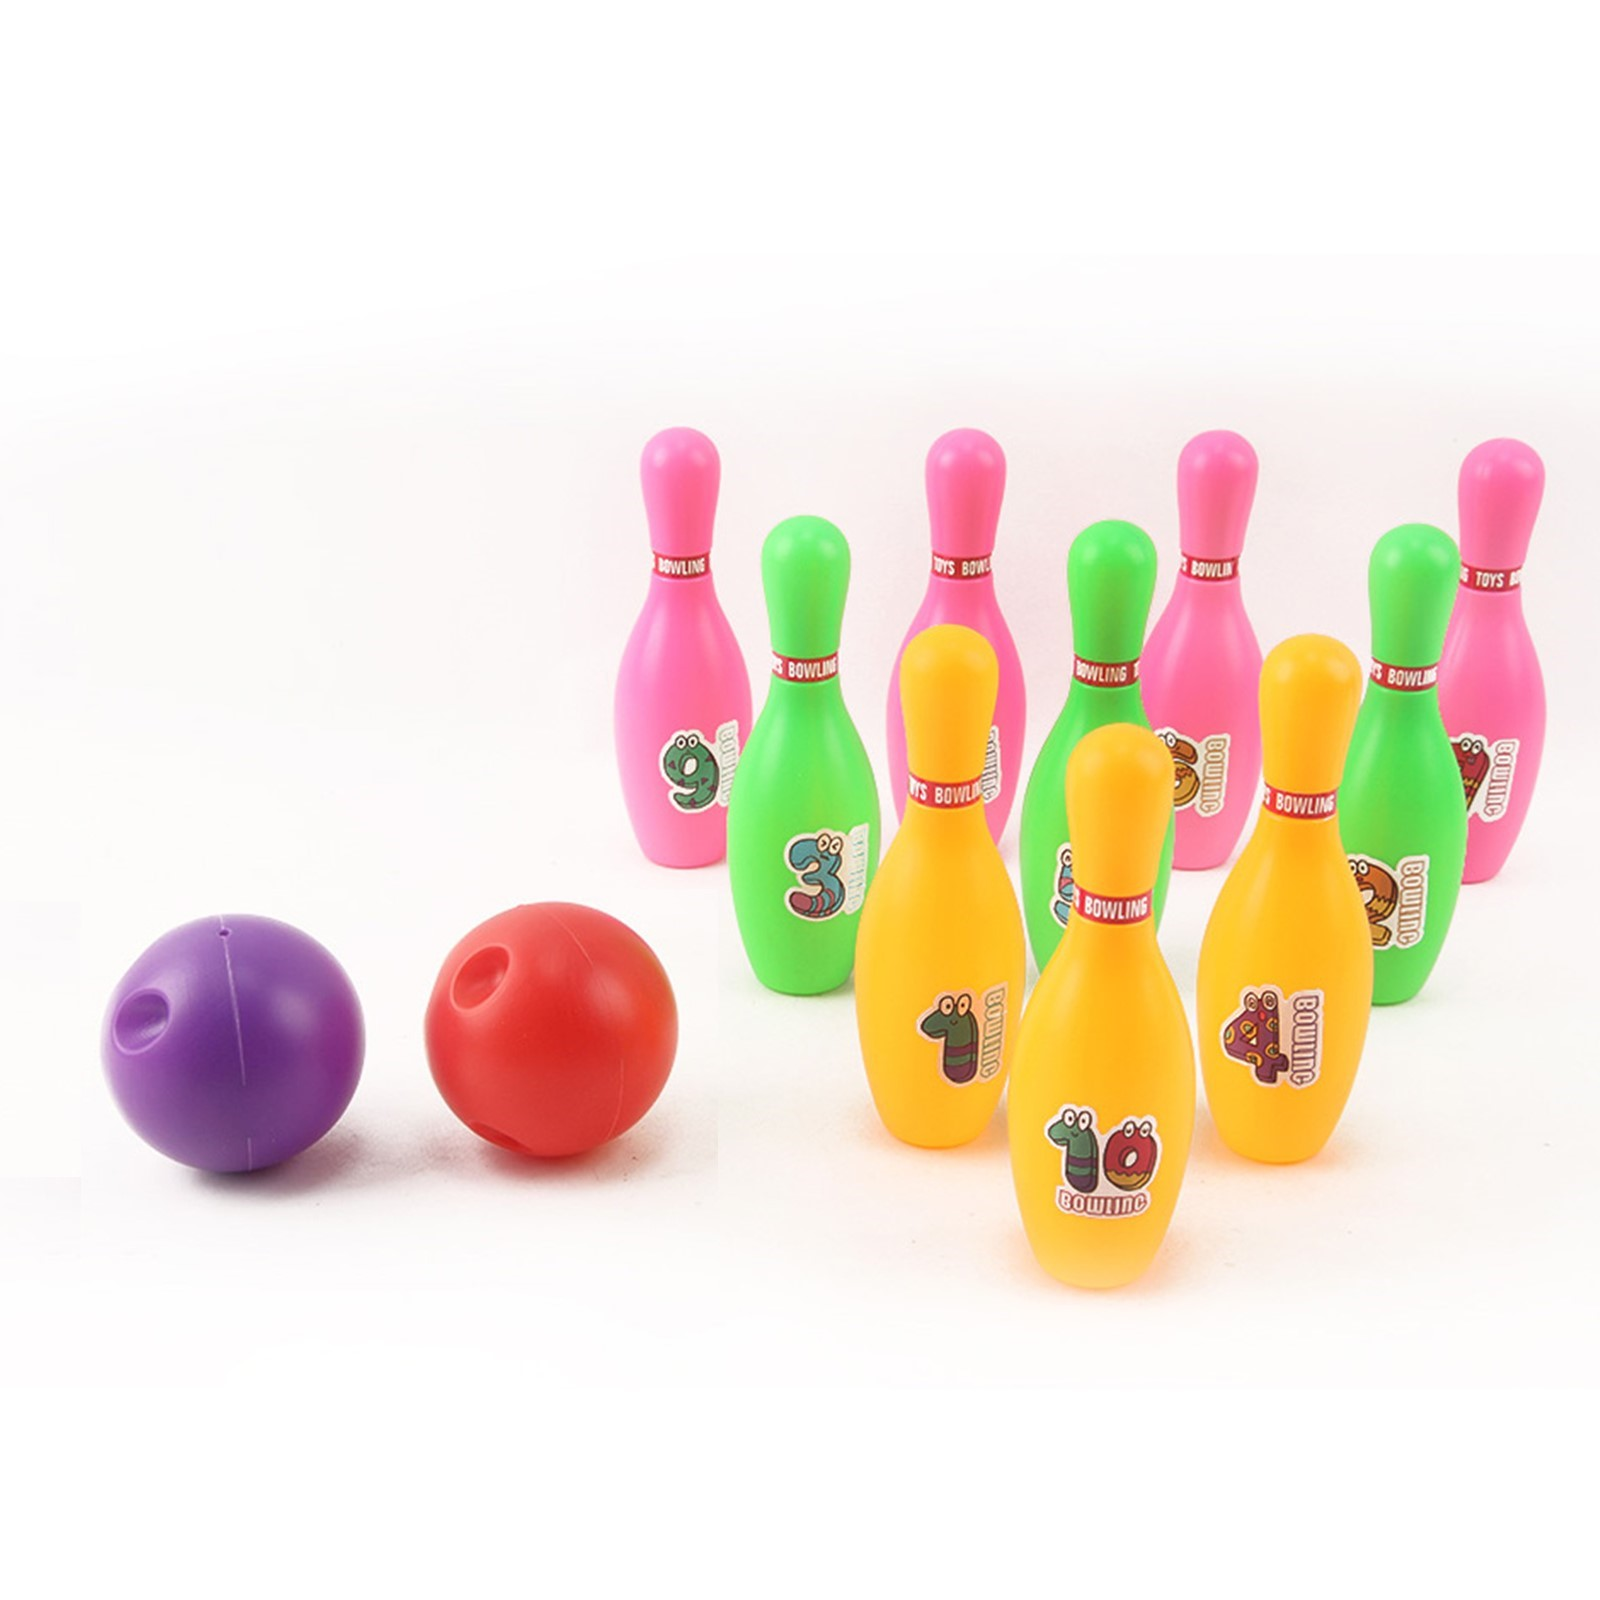 12 Pieces Deluxe Toy Bowling Play Set Includes 10 Pins And 2 Balls Carrying Case Colorful Educational Early Development Indoor Sport Alley Game Perfect Gift For Toddlers Boy Or Girl Children